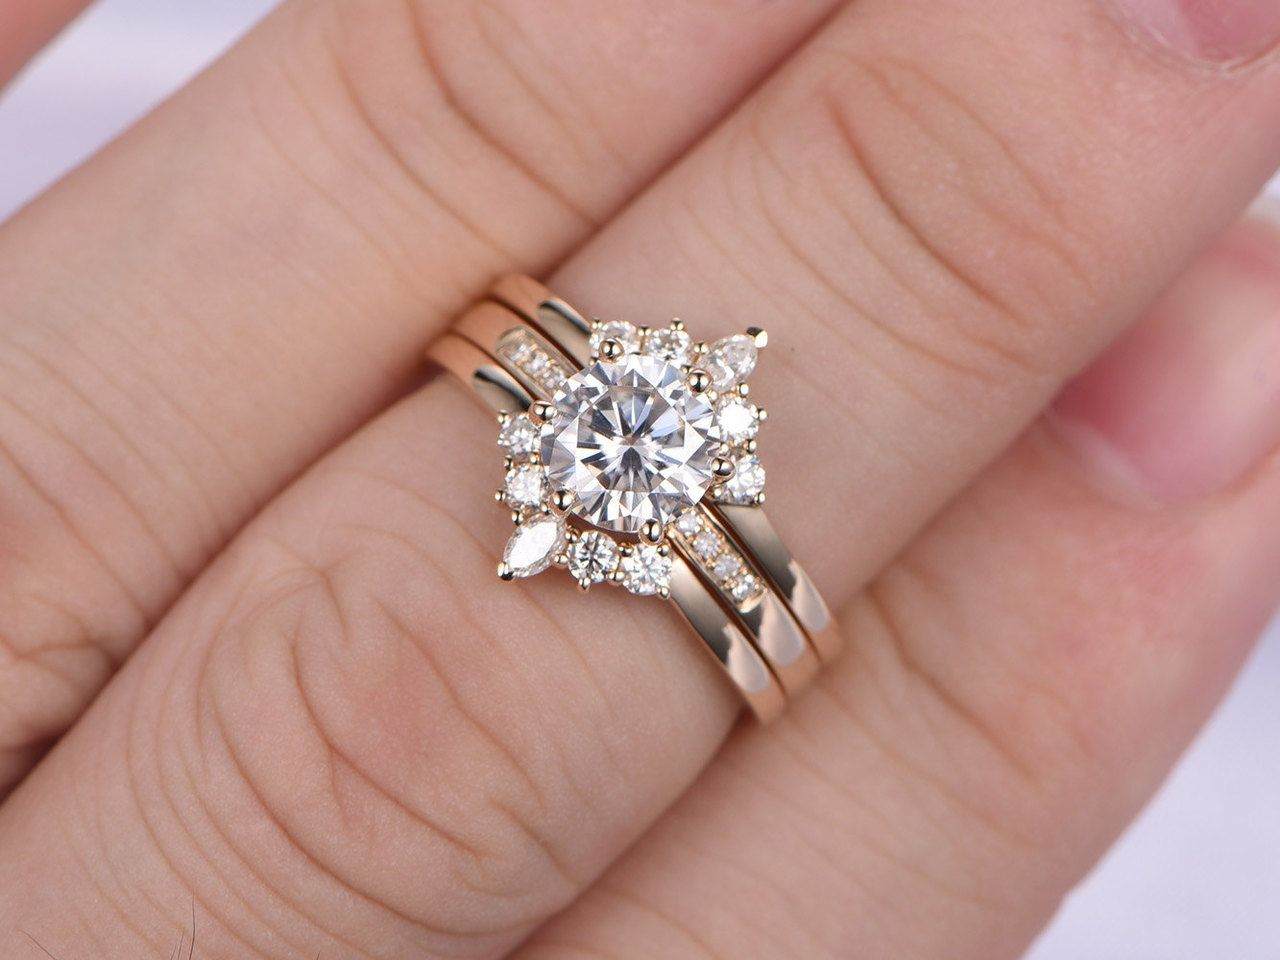 12 Diamond Engagement Rings That Will Leave You Speechless | Wedding ...